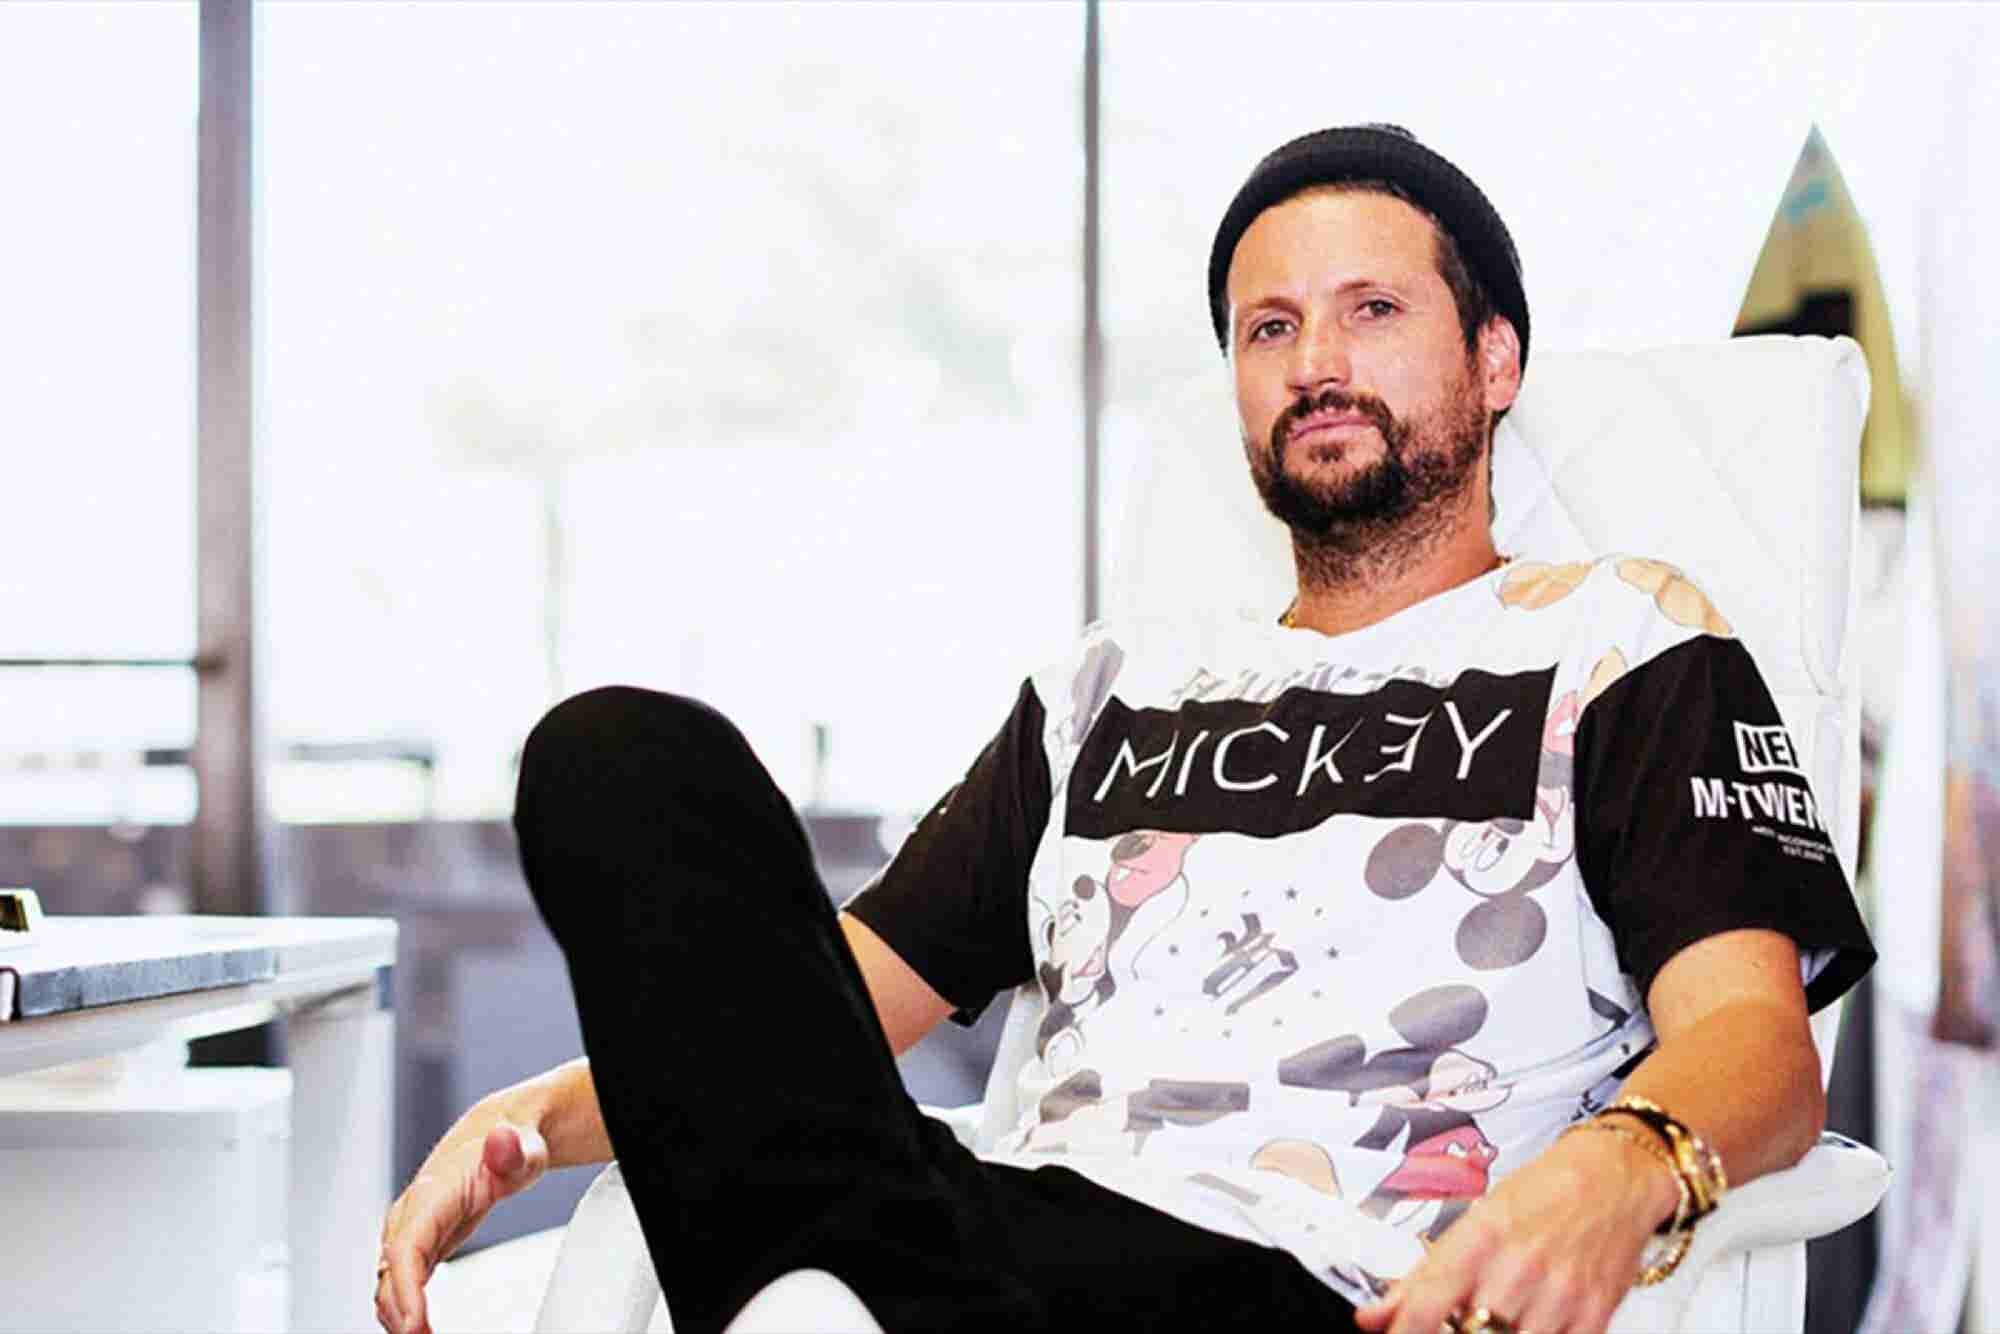 Beanies, Tees and Steez: How Shaun Neff Built a $100 Million Business Out of His Backpack